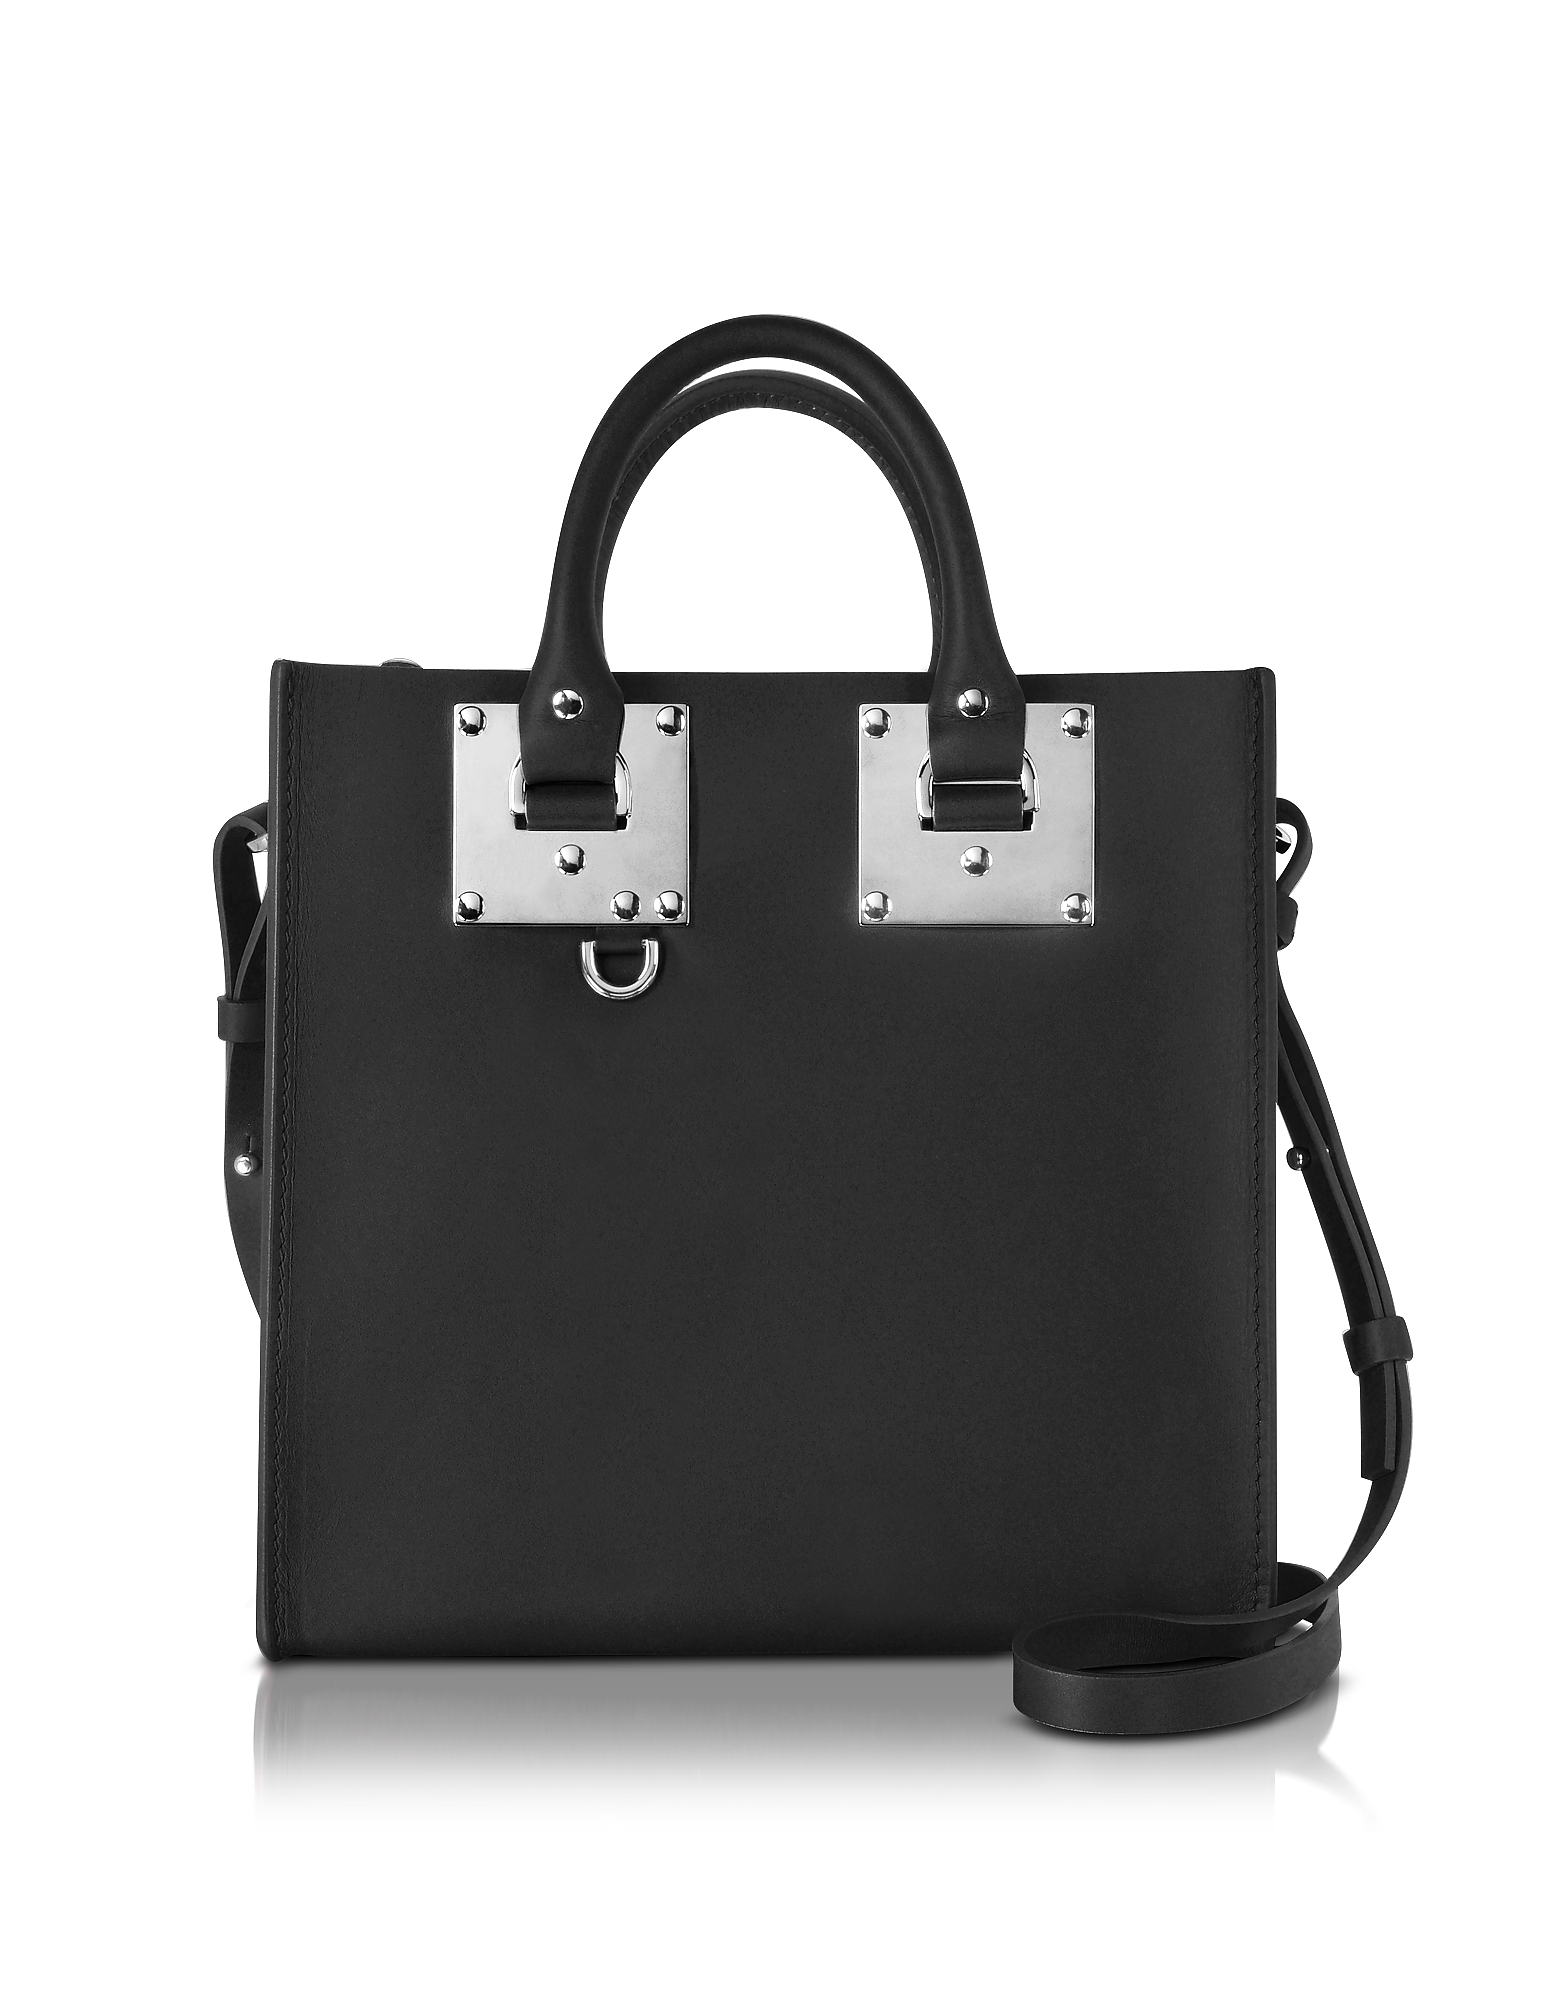 Image of Sophie Hulme Designer Handbags, Black Saddle Leather Square Albion Tote